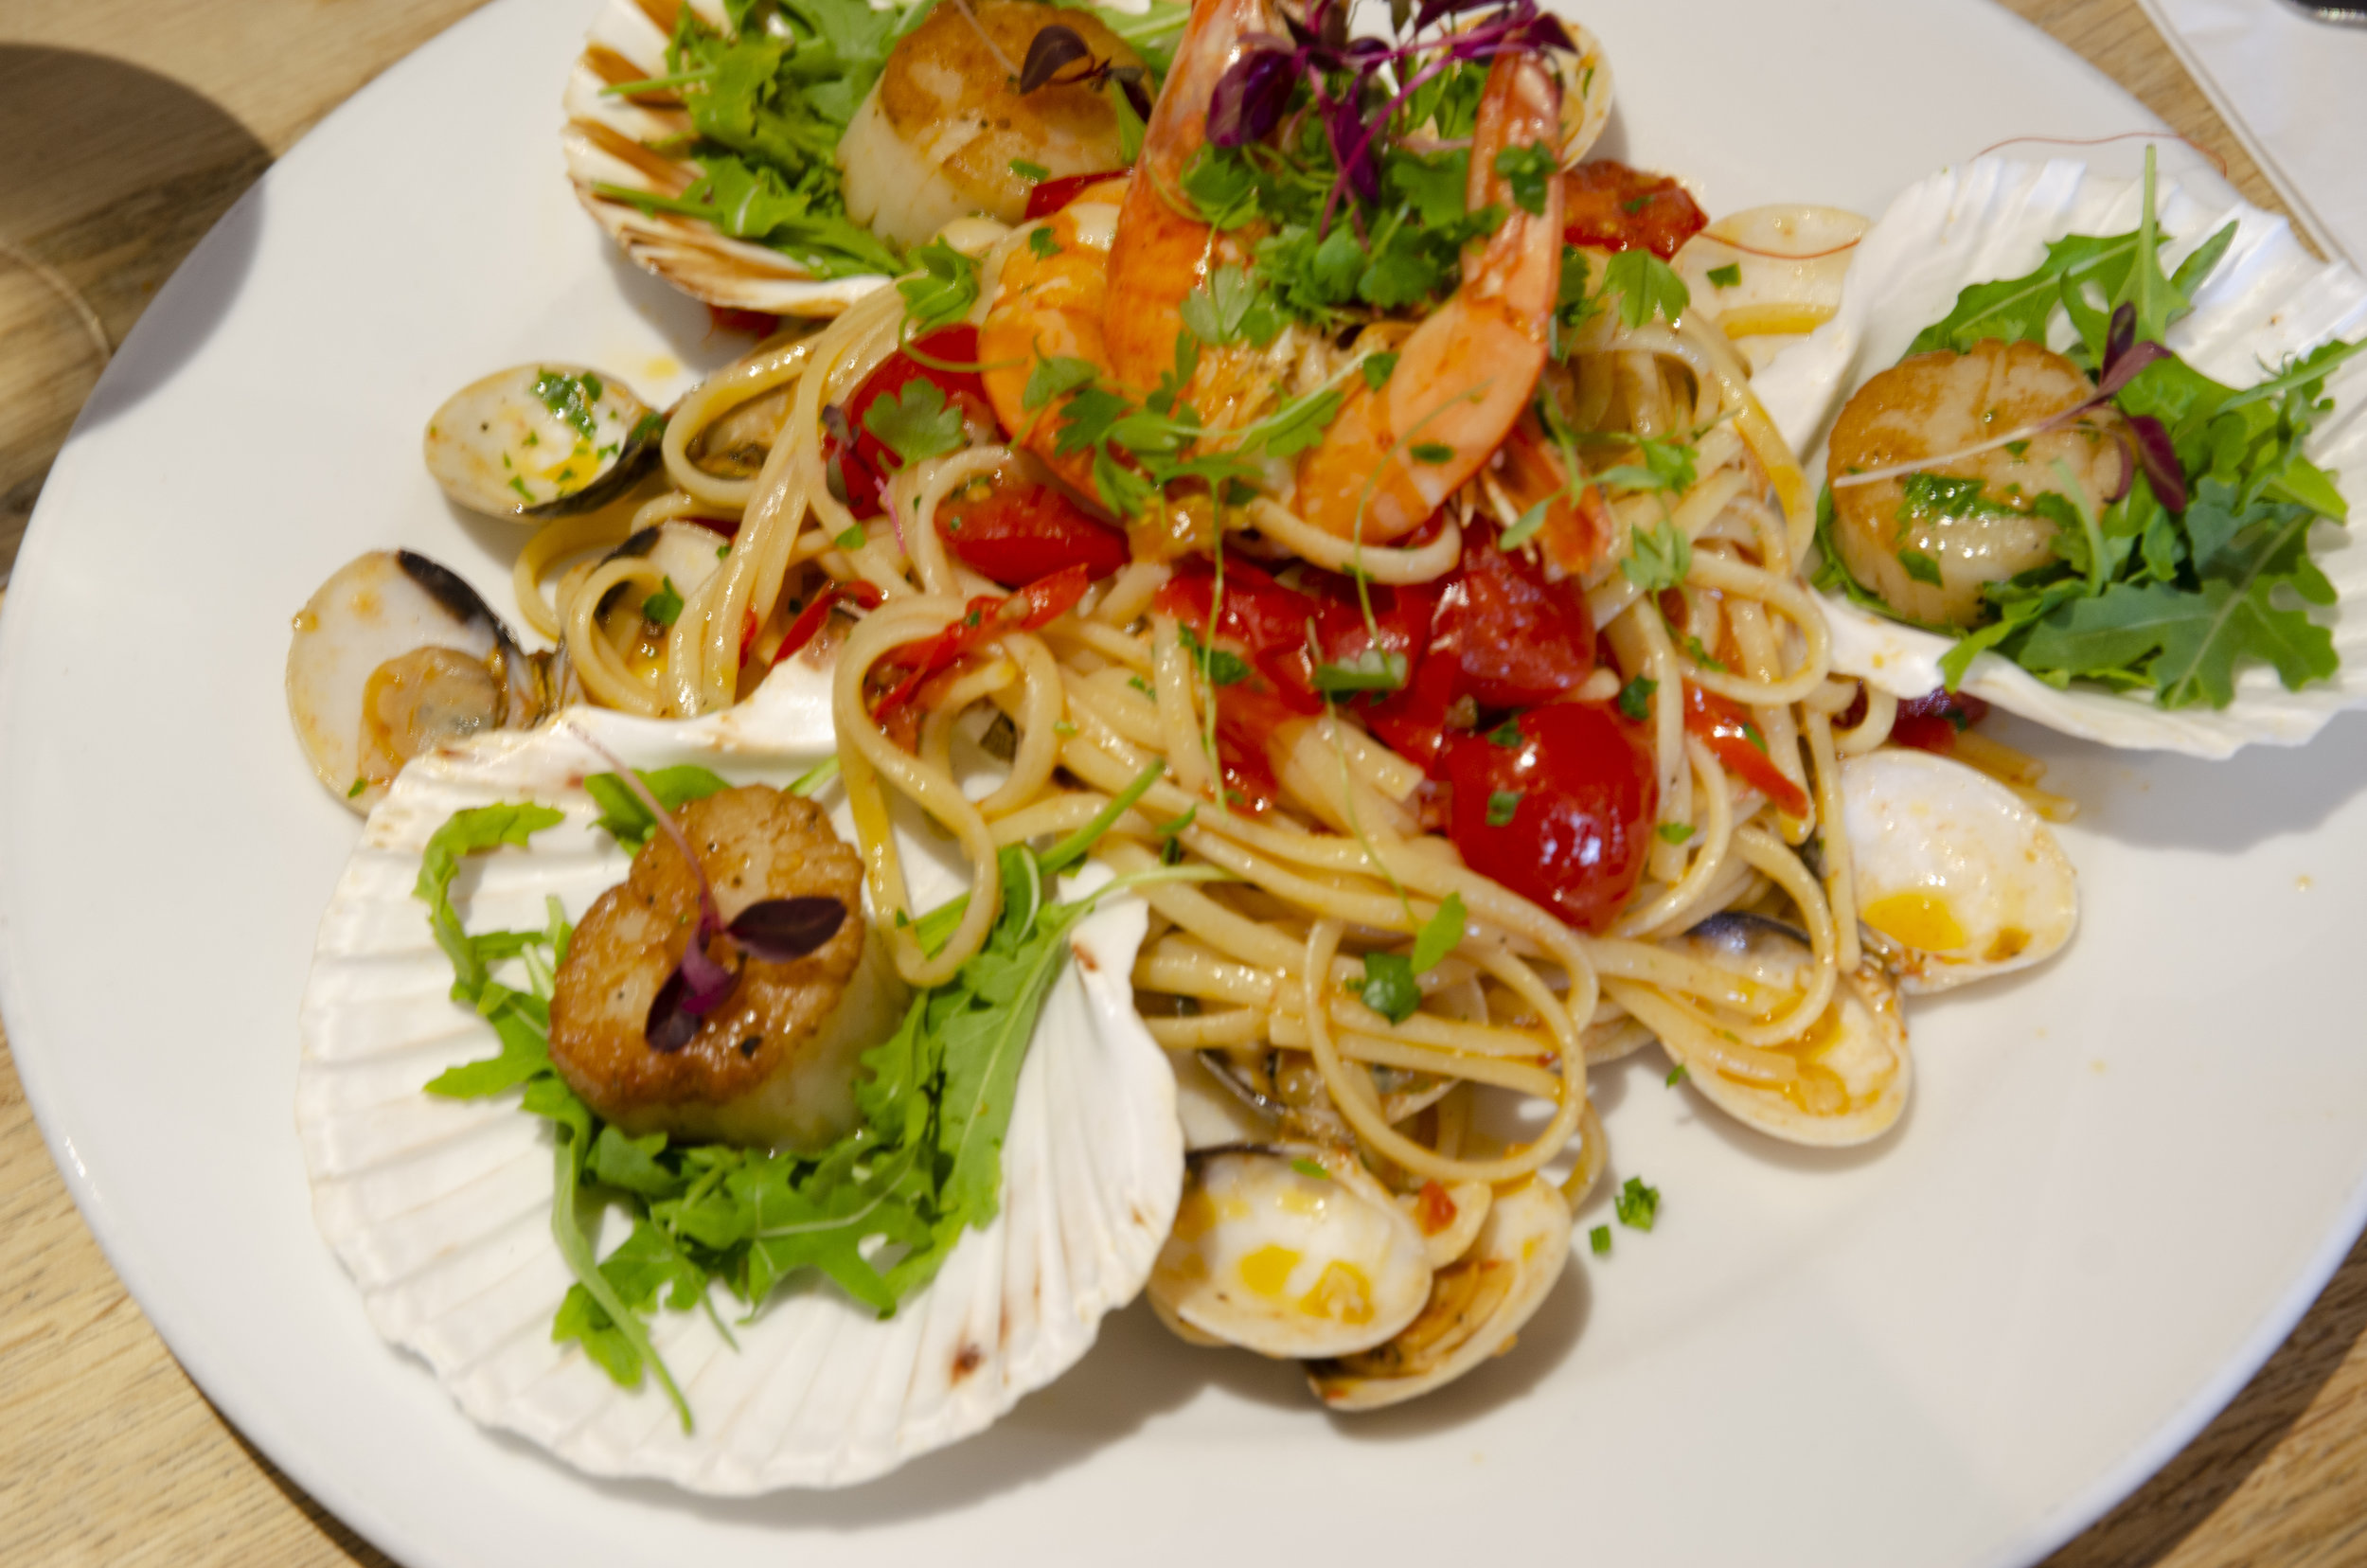 Check our menu - Our specialty menu provides well crafted and cooked dishes that brings you fresh Mediterranean vibes